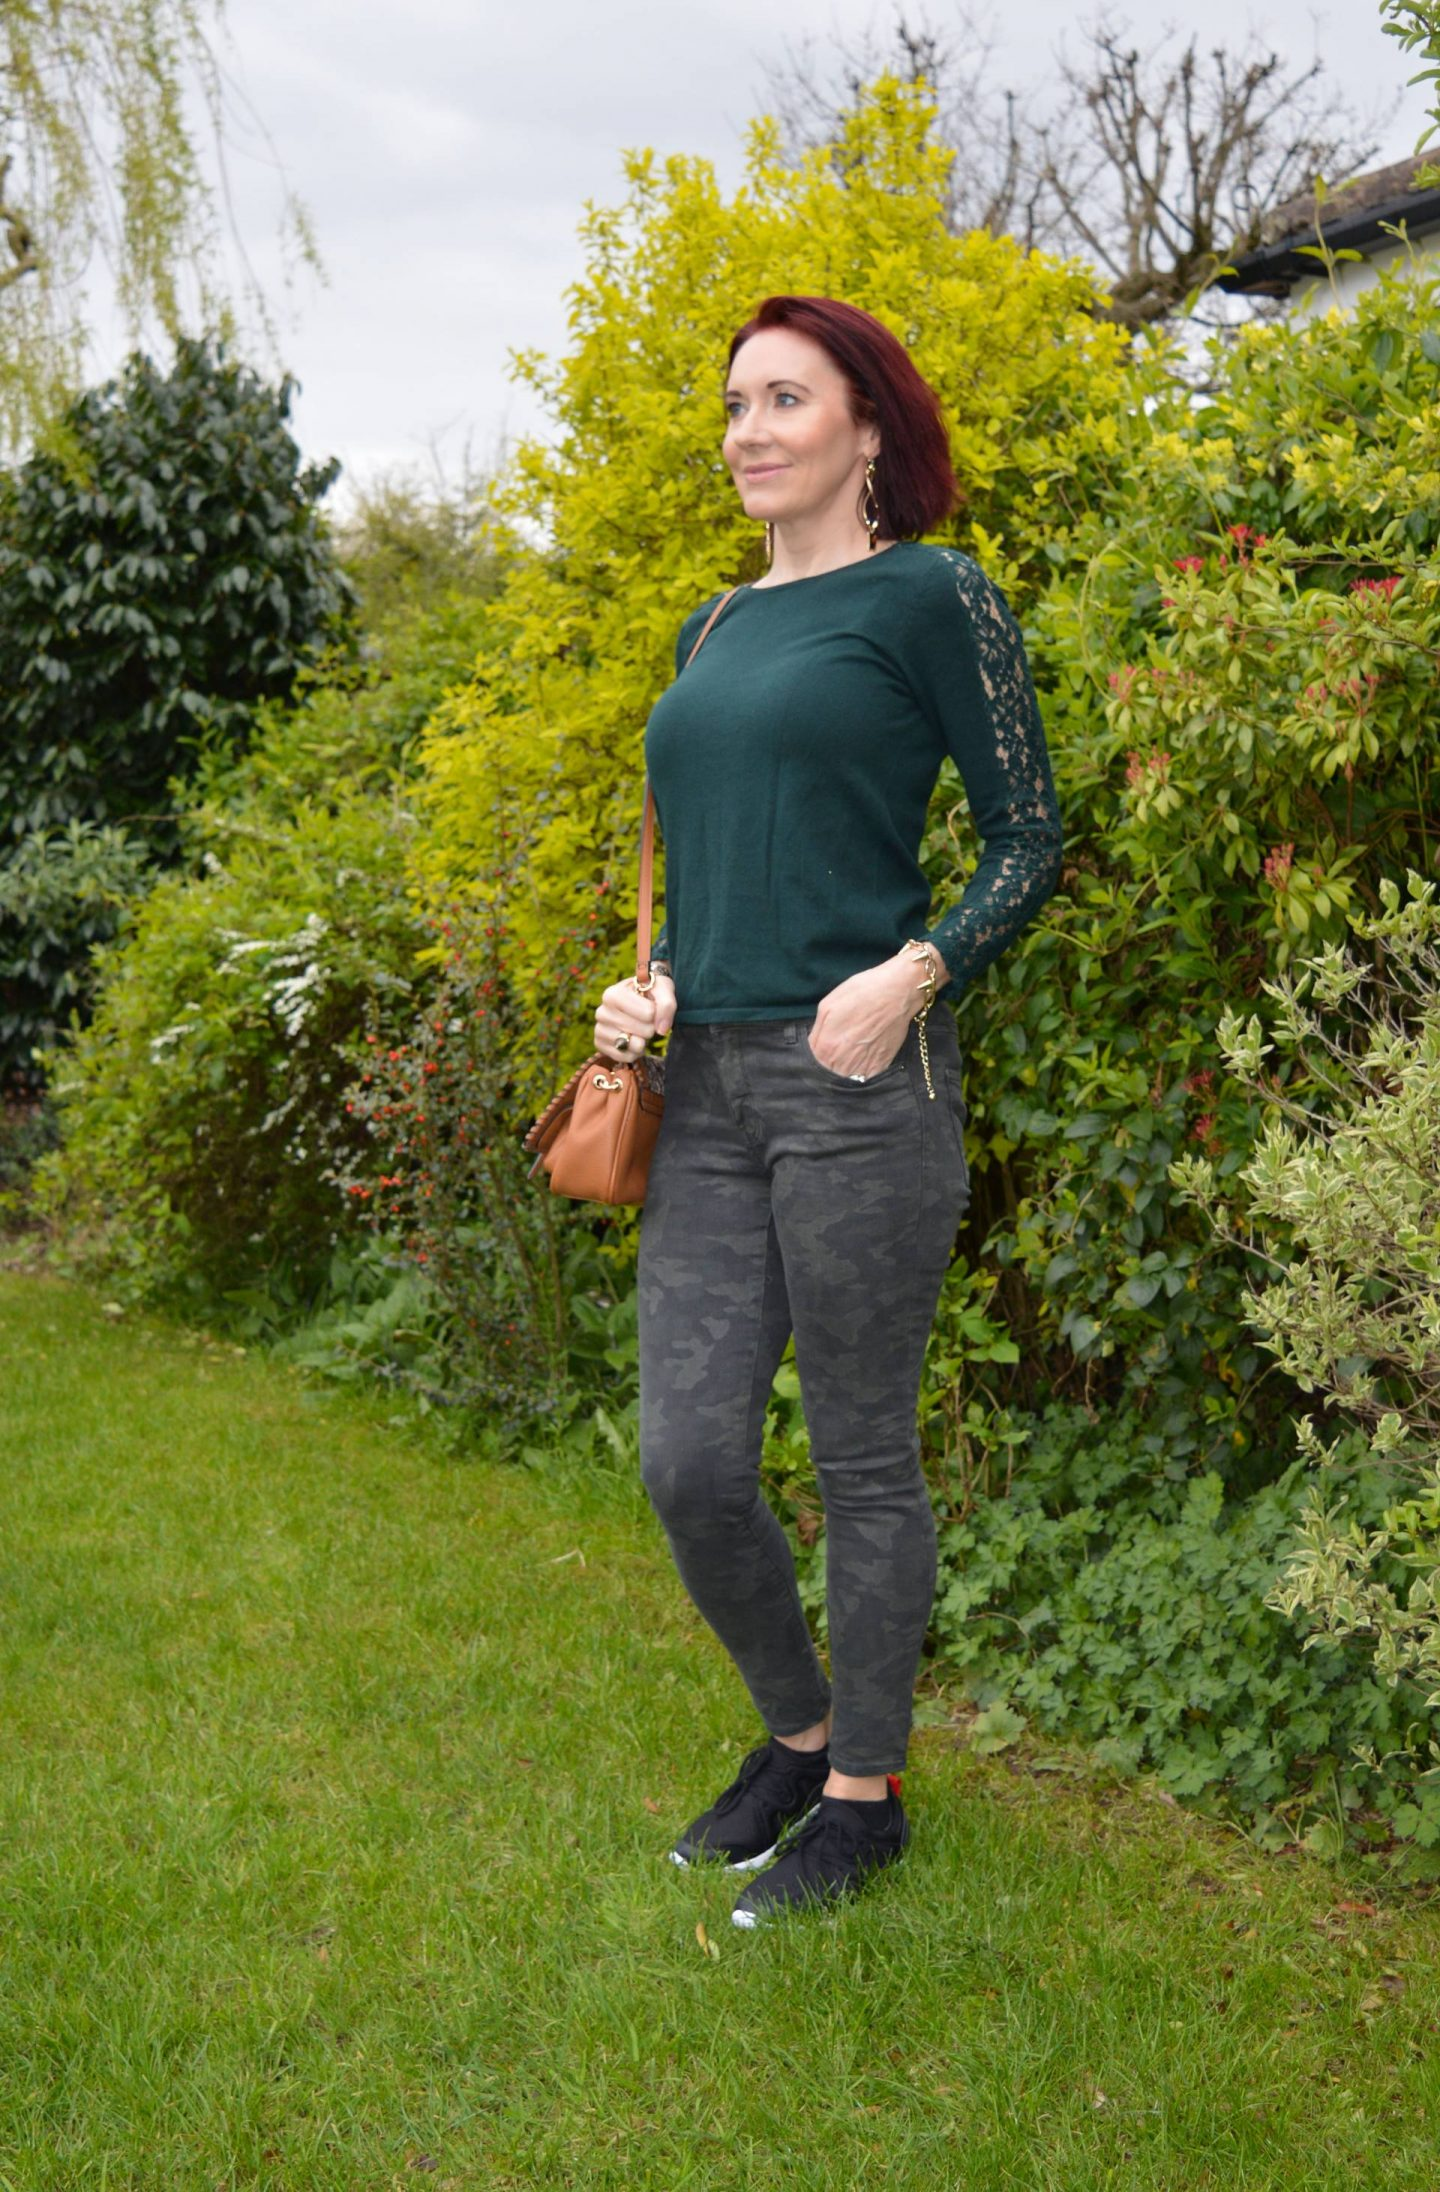 Lace, camo and Leopard Print, Vionic Storm trainers, mango camo print skinny jeans